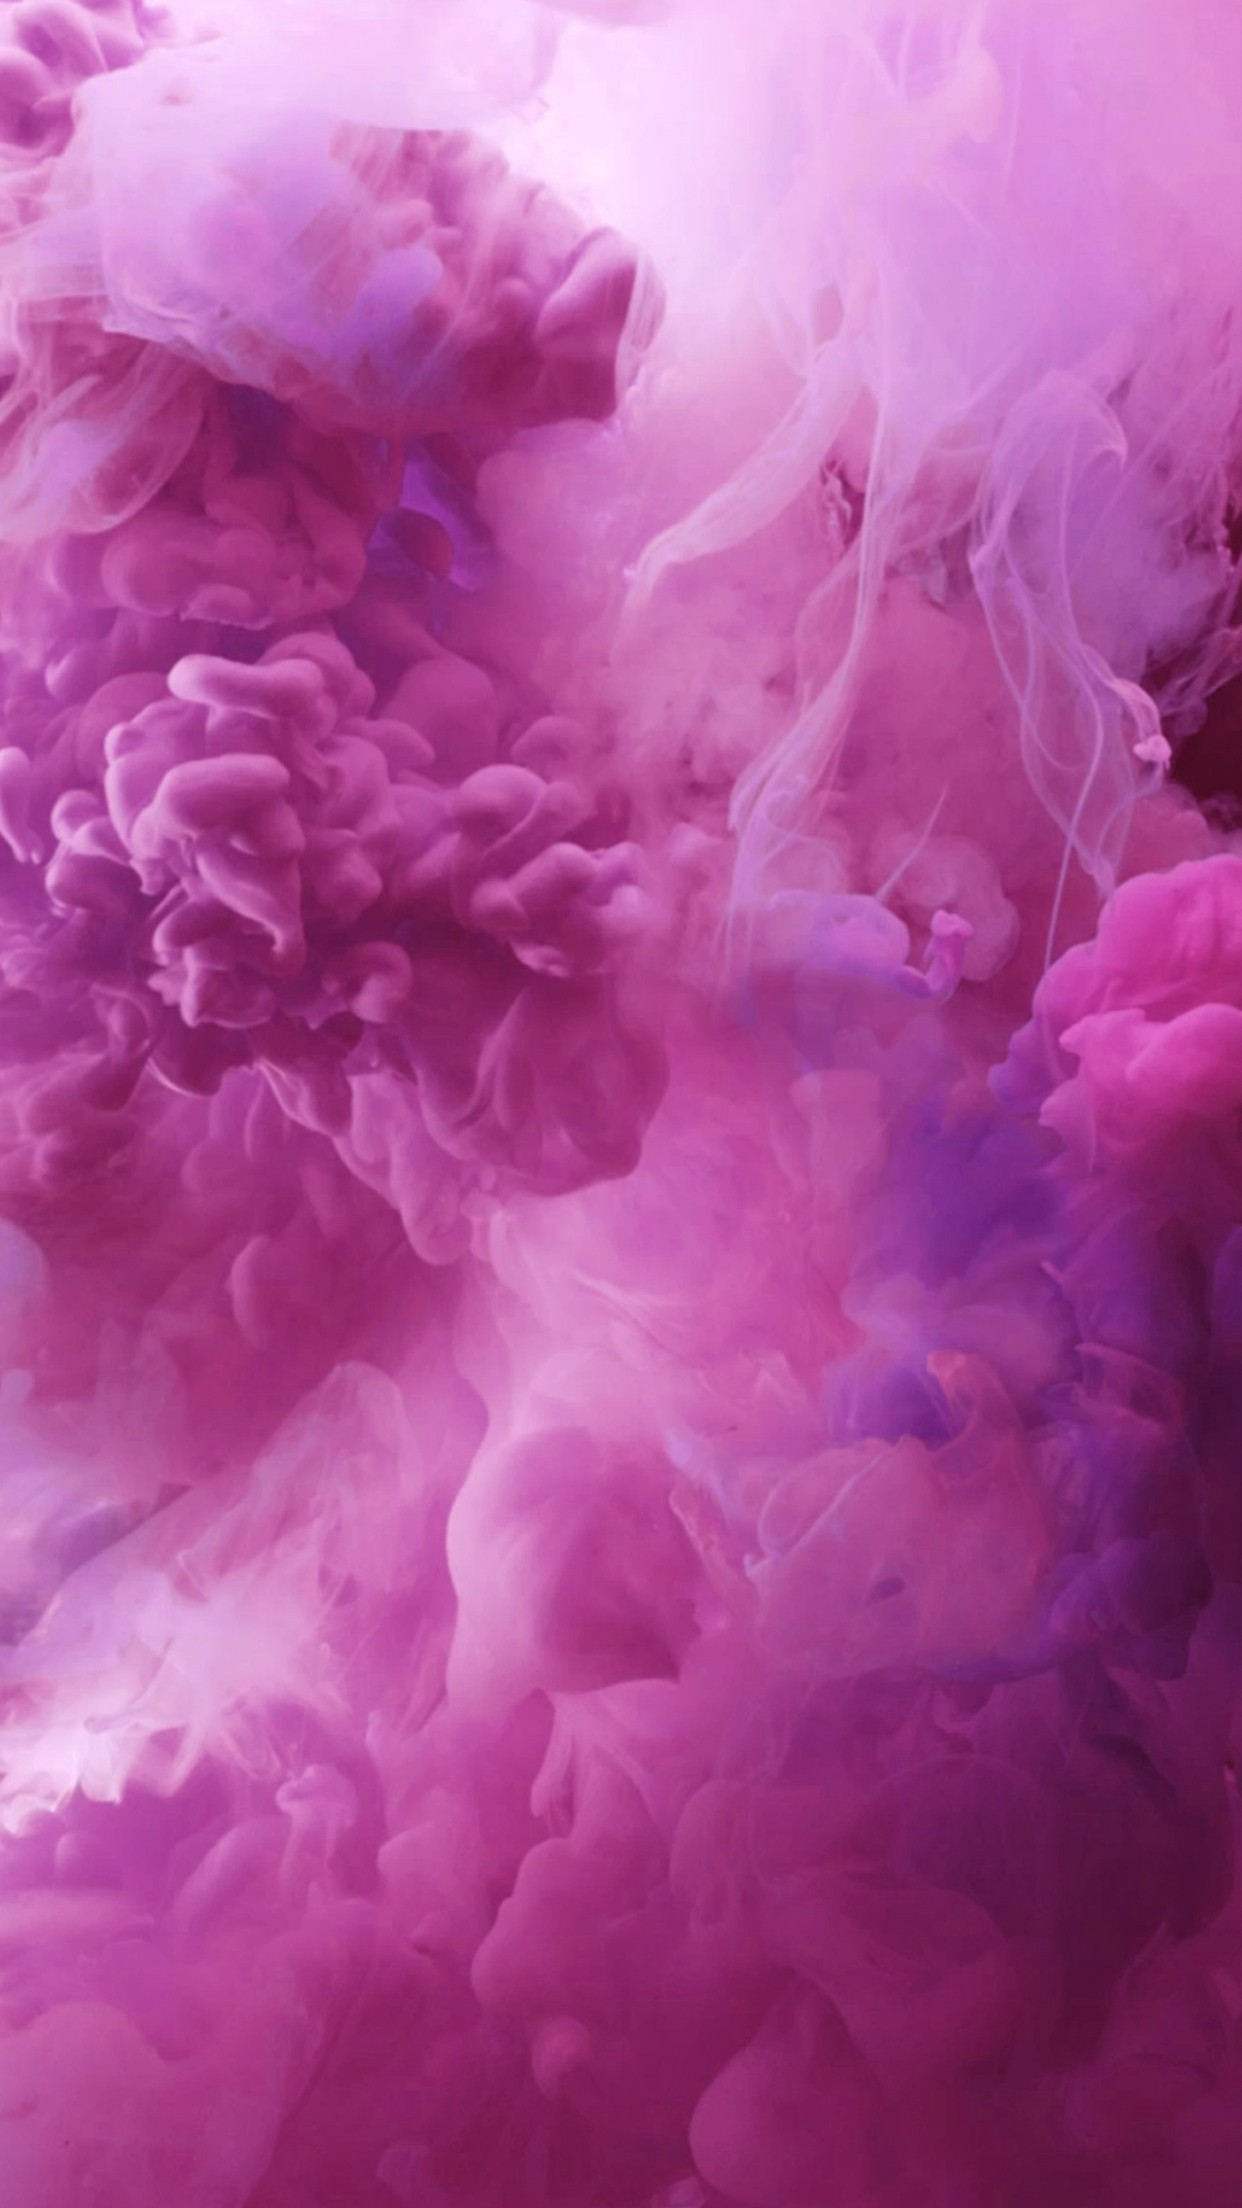 51+ Aesthetic backgrounds ·① Download free High Resolution ...